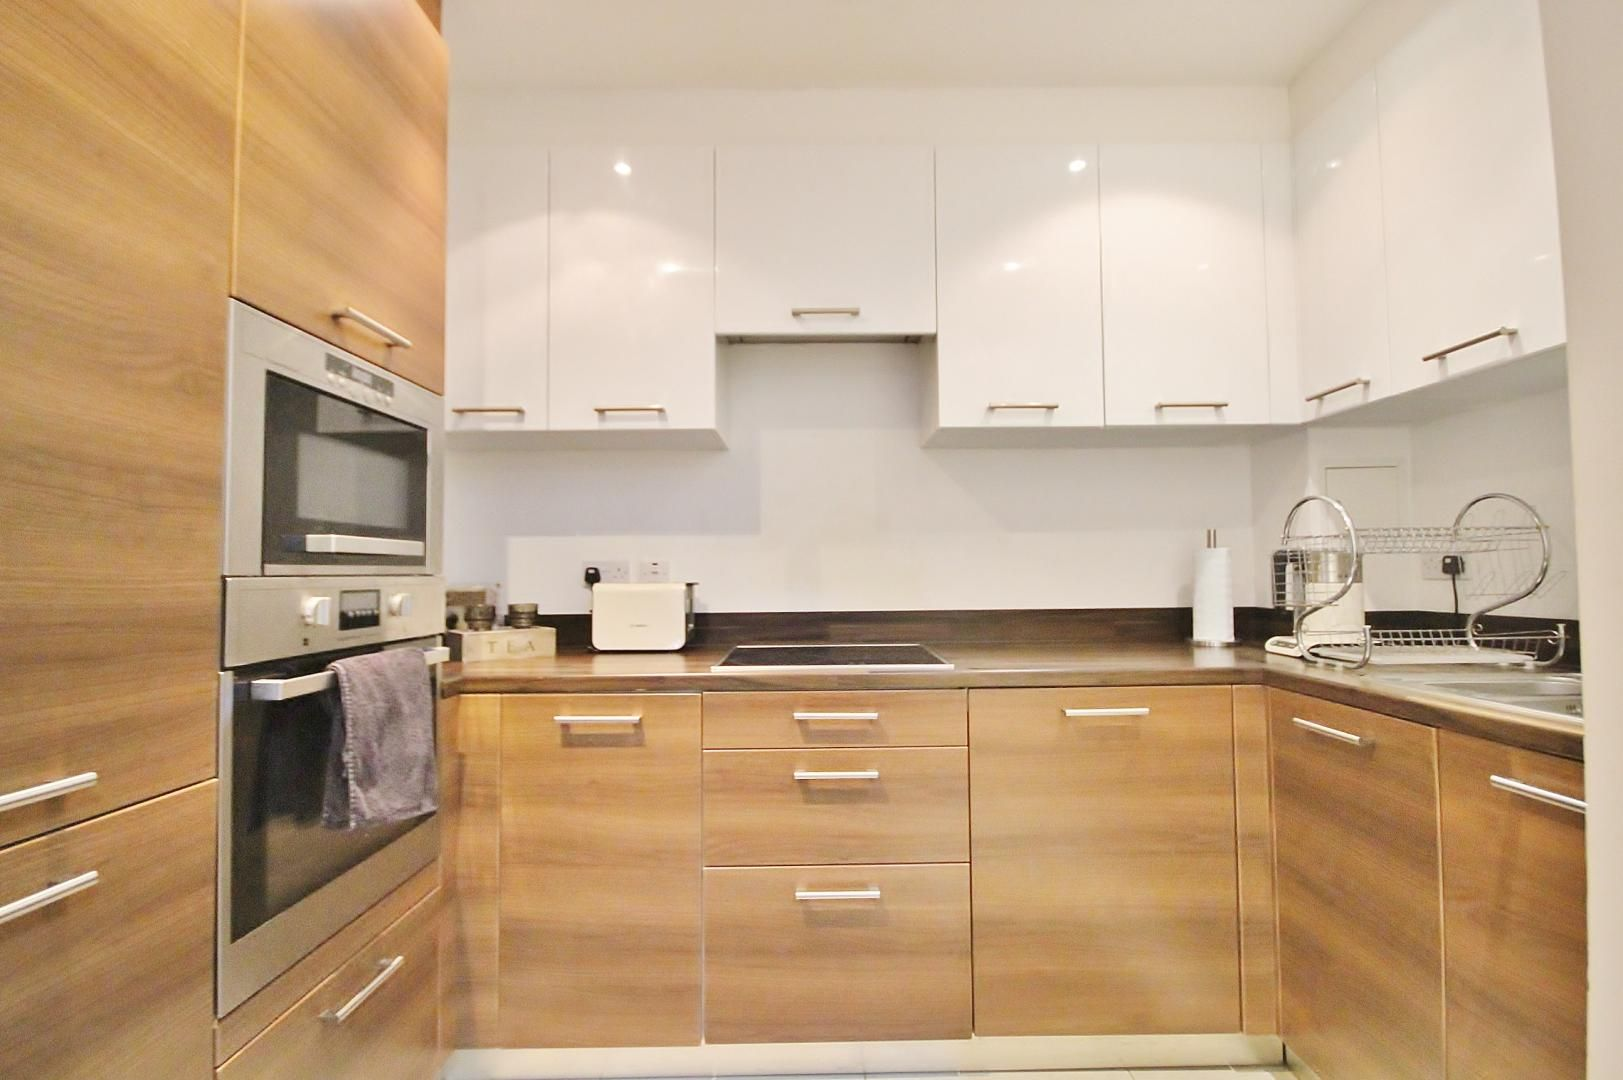 2 bed flat for sale in Forge Square, E14